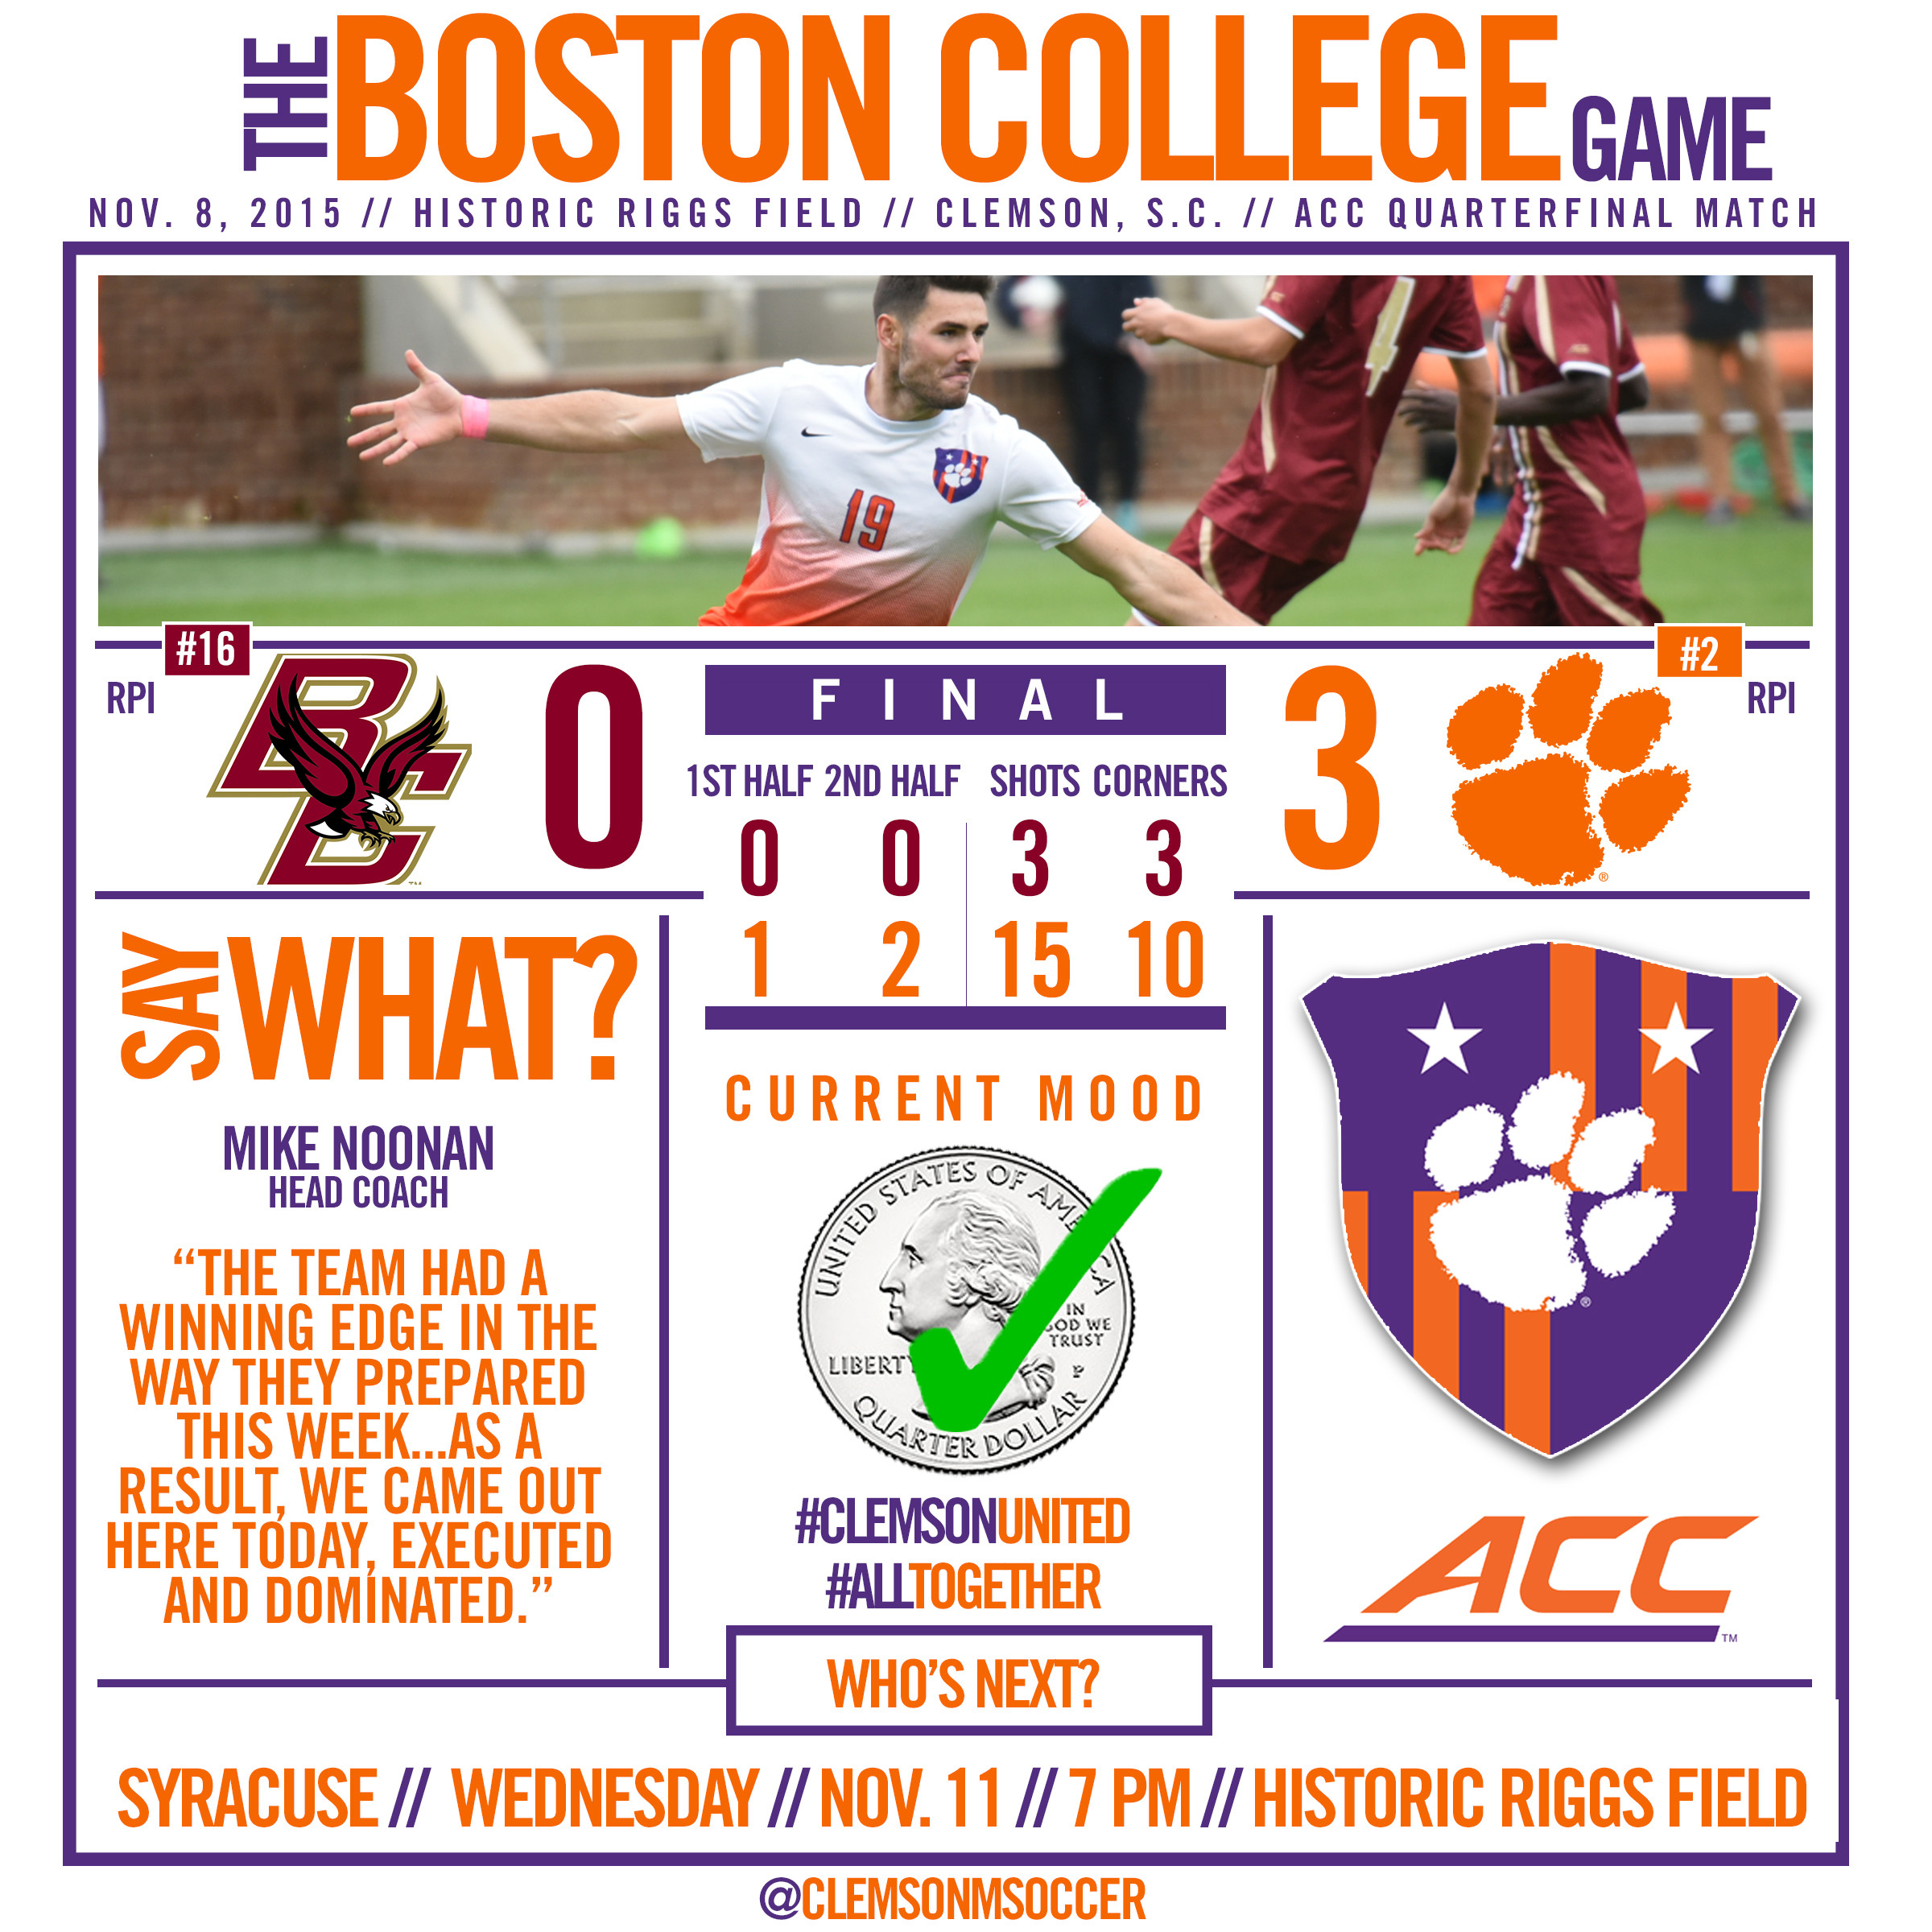 No. 2 Tigers Advance to ACC Semifinals with 3-0 Win Over BC Sunday